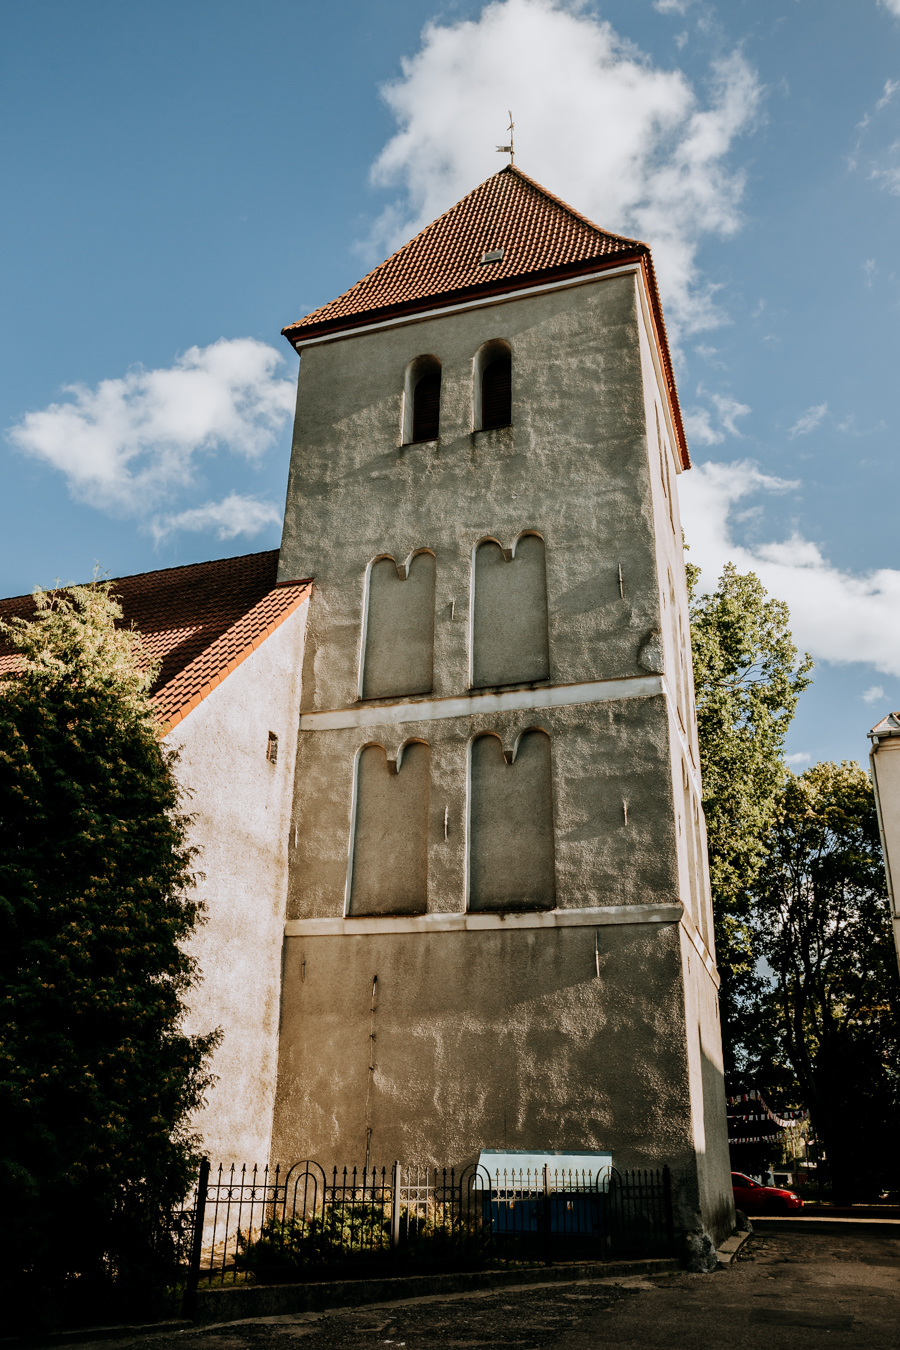 The Evangelical-Augsburg Church from the 18th century in Mragowo